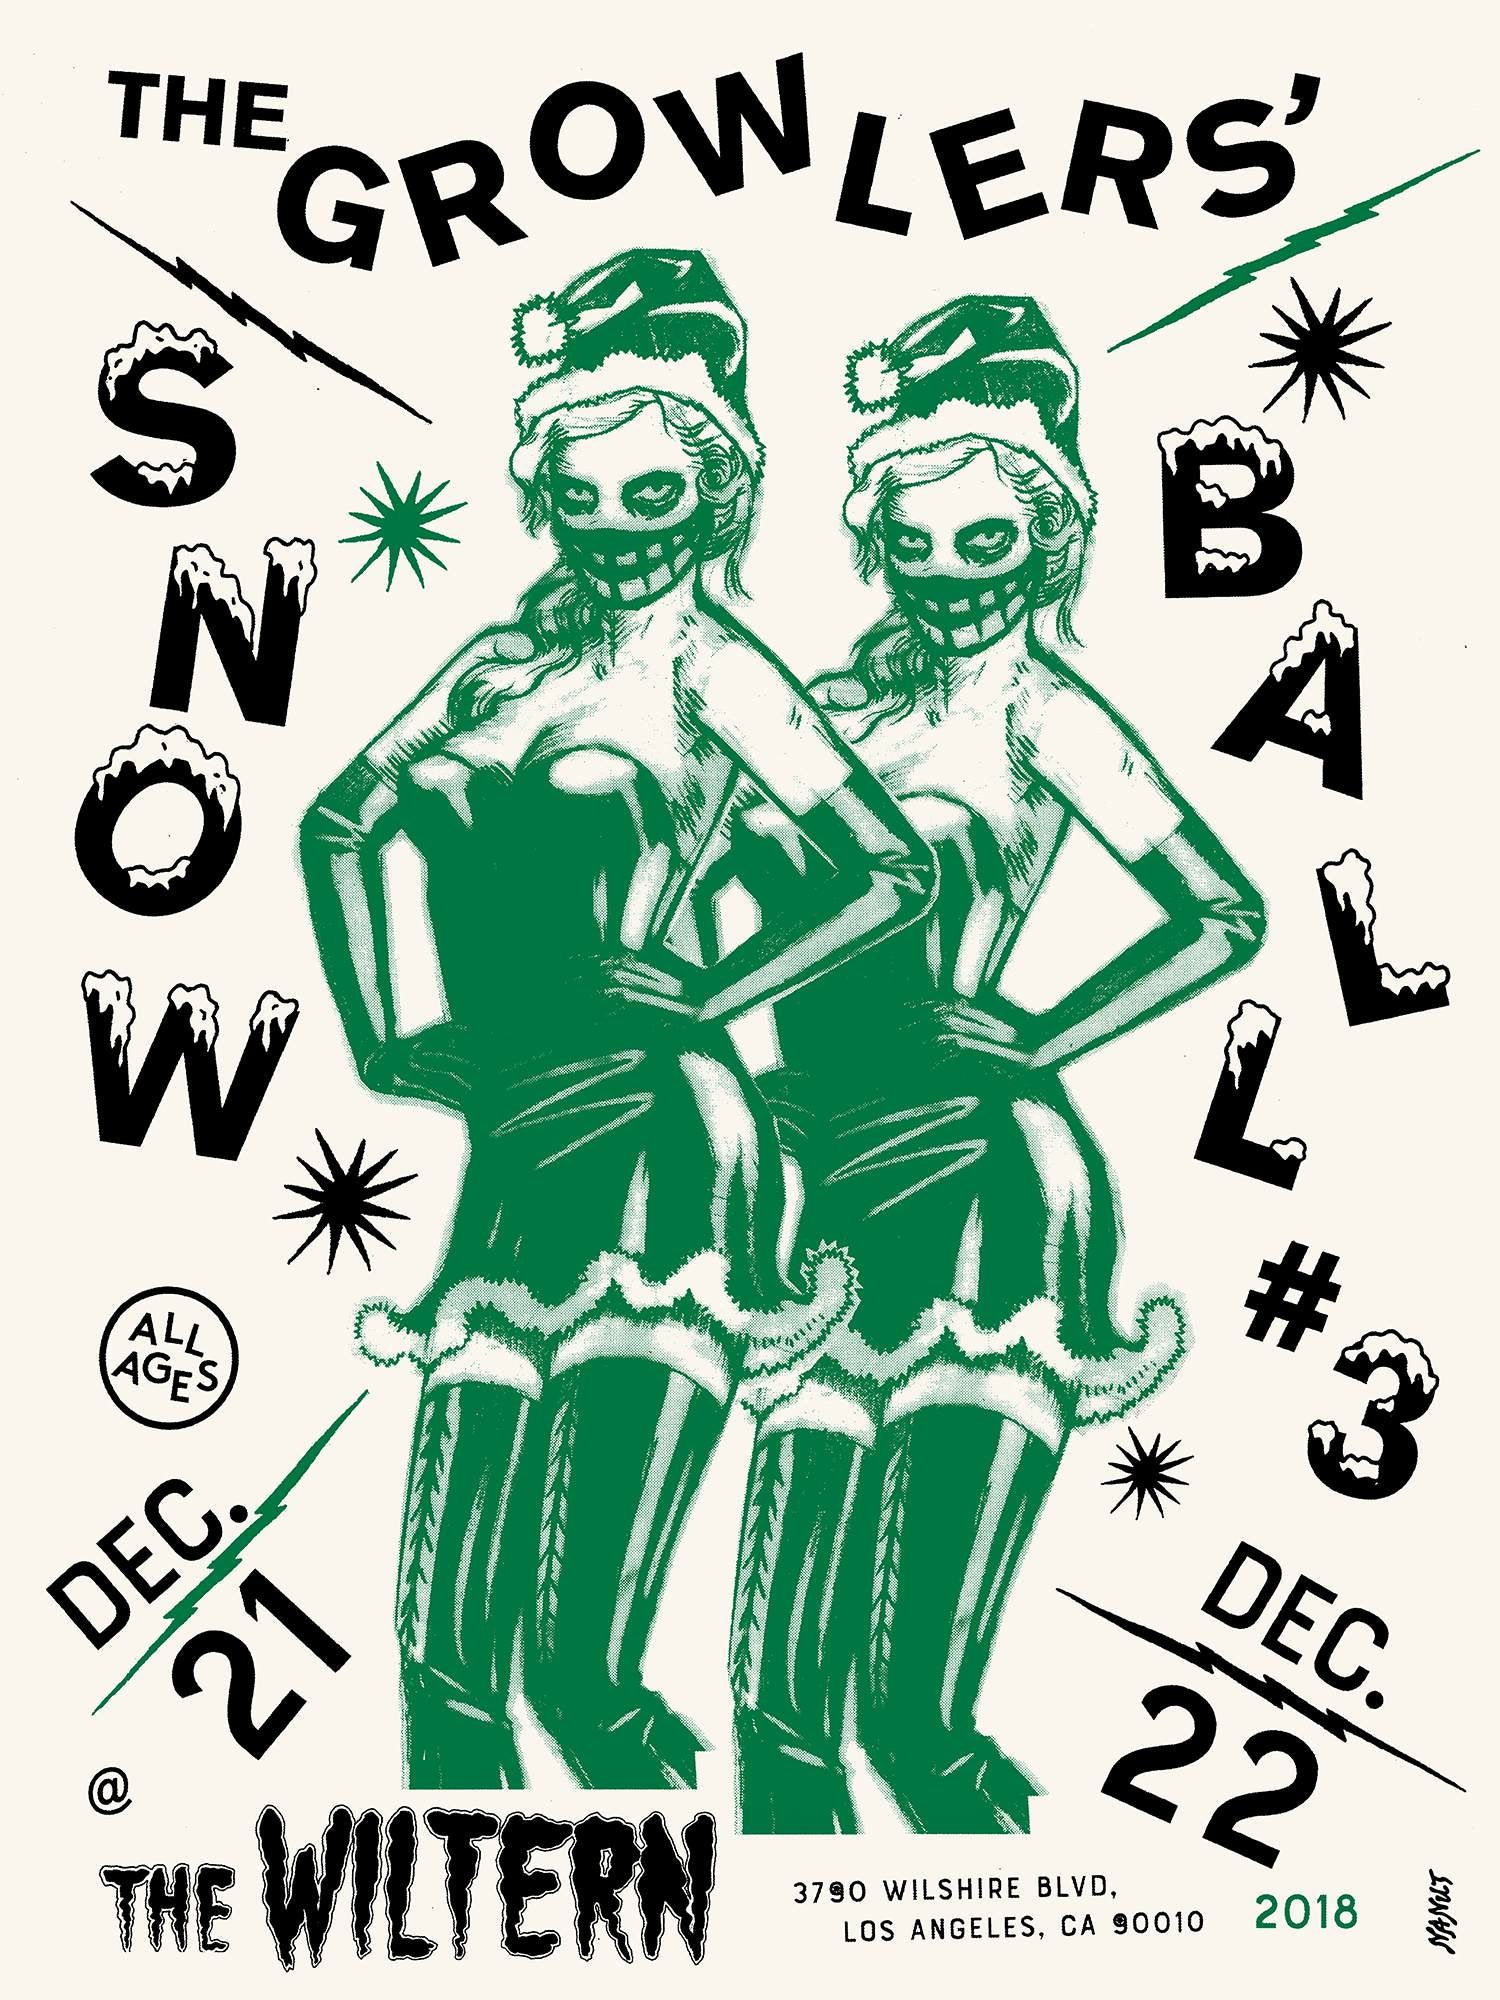 Image of The Growlers Snow Ball #3 Poster, Green.